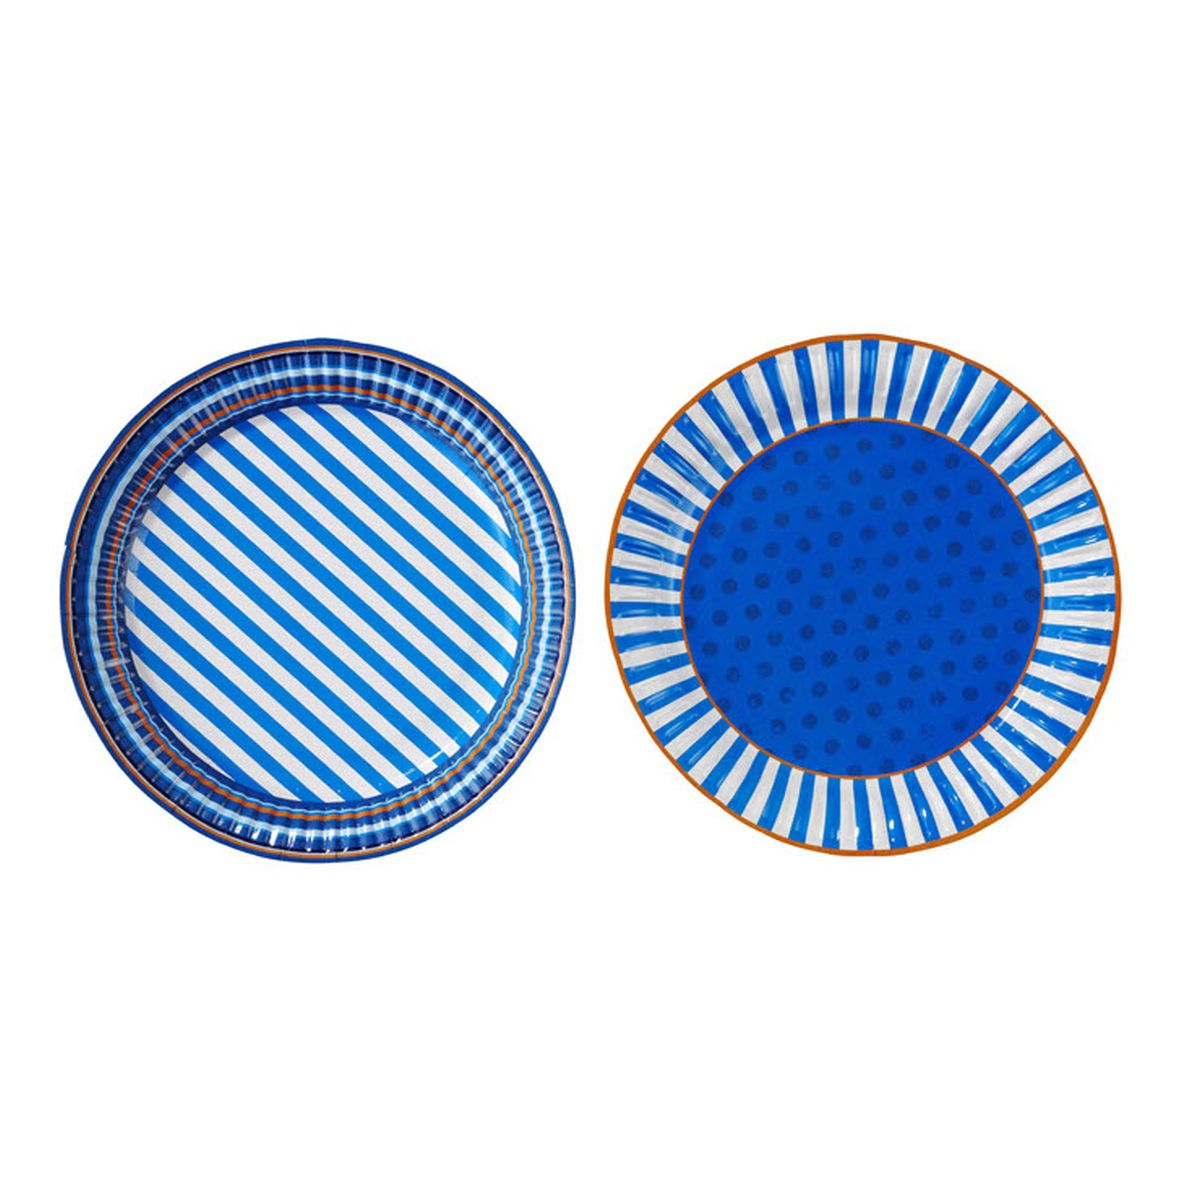 Set 8 pappteller blue party blau von talking tables kaufen Pappteller blau